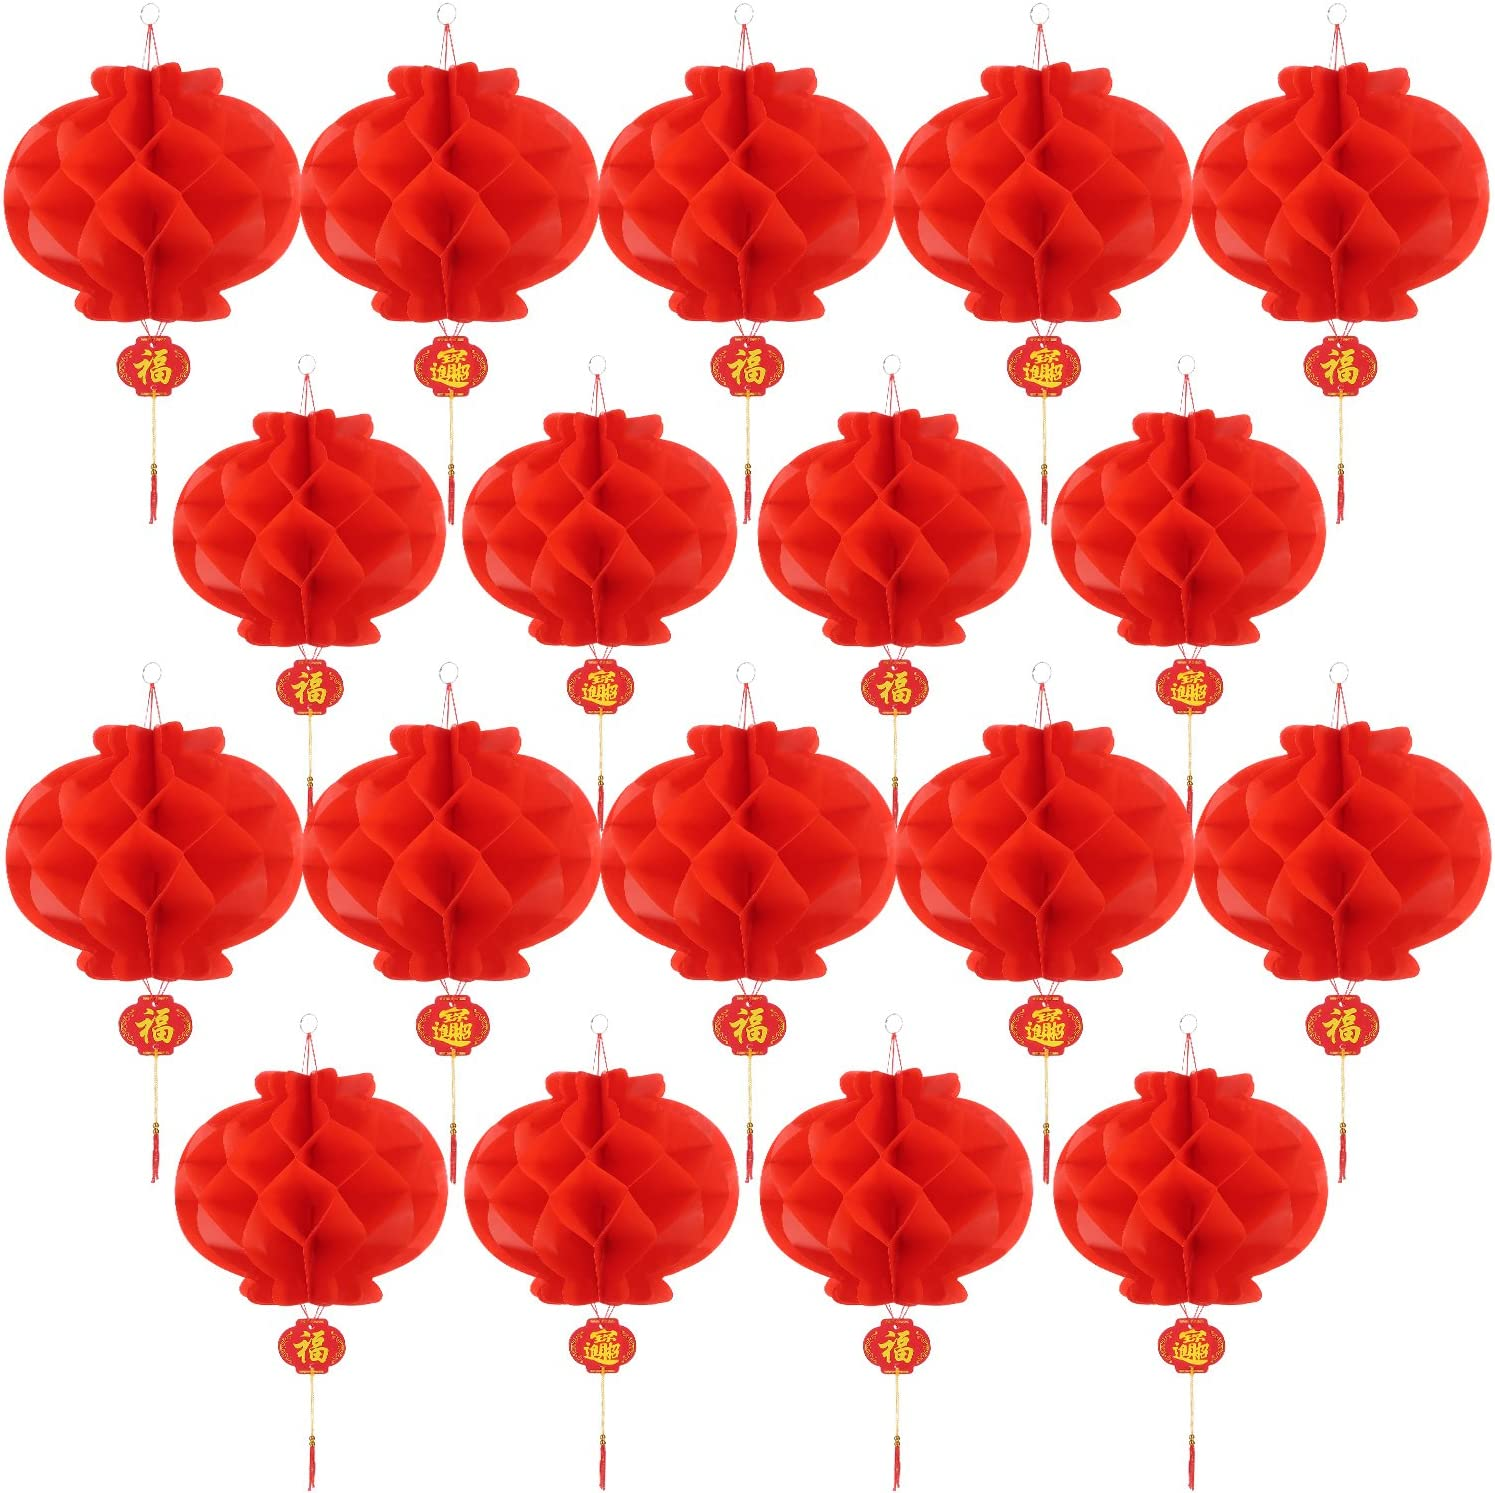 Bememo 20 Pieces Chinese New Year Red Paper Lanterns Thickened Encryption Chinese Hang Lantern Decorations (10 Inch)